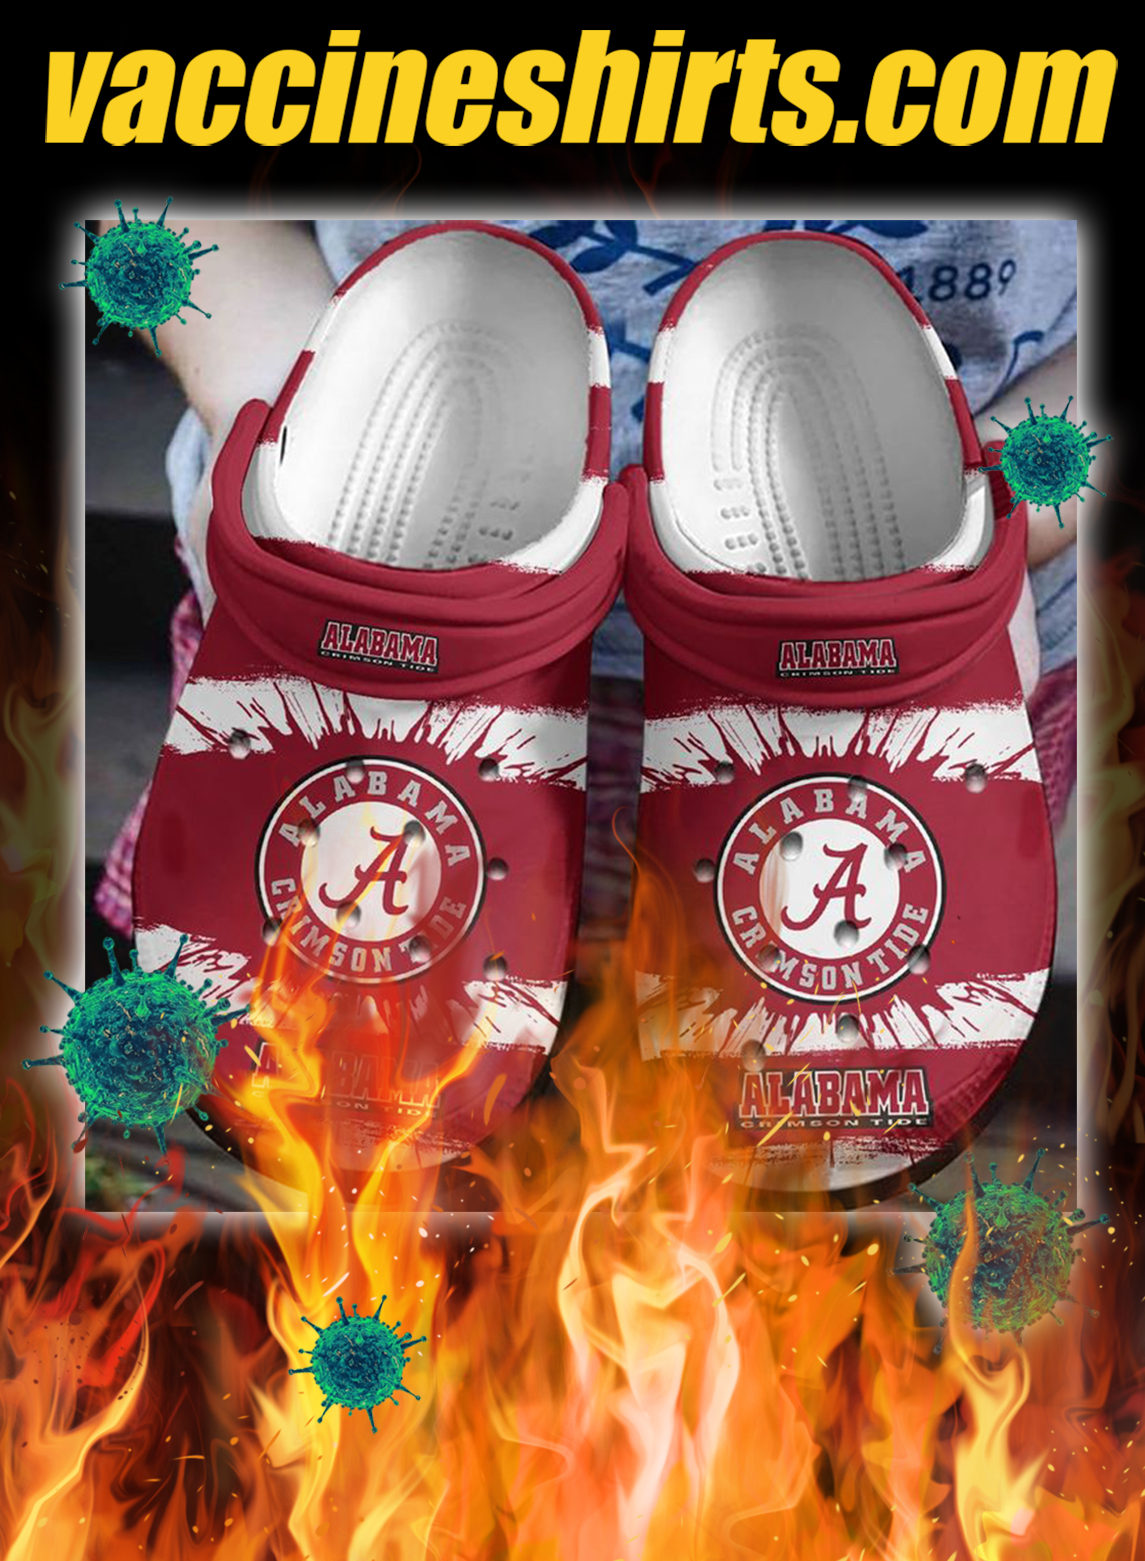 Alabama crimson tide crocband crocs shoes- pic 1